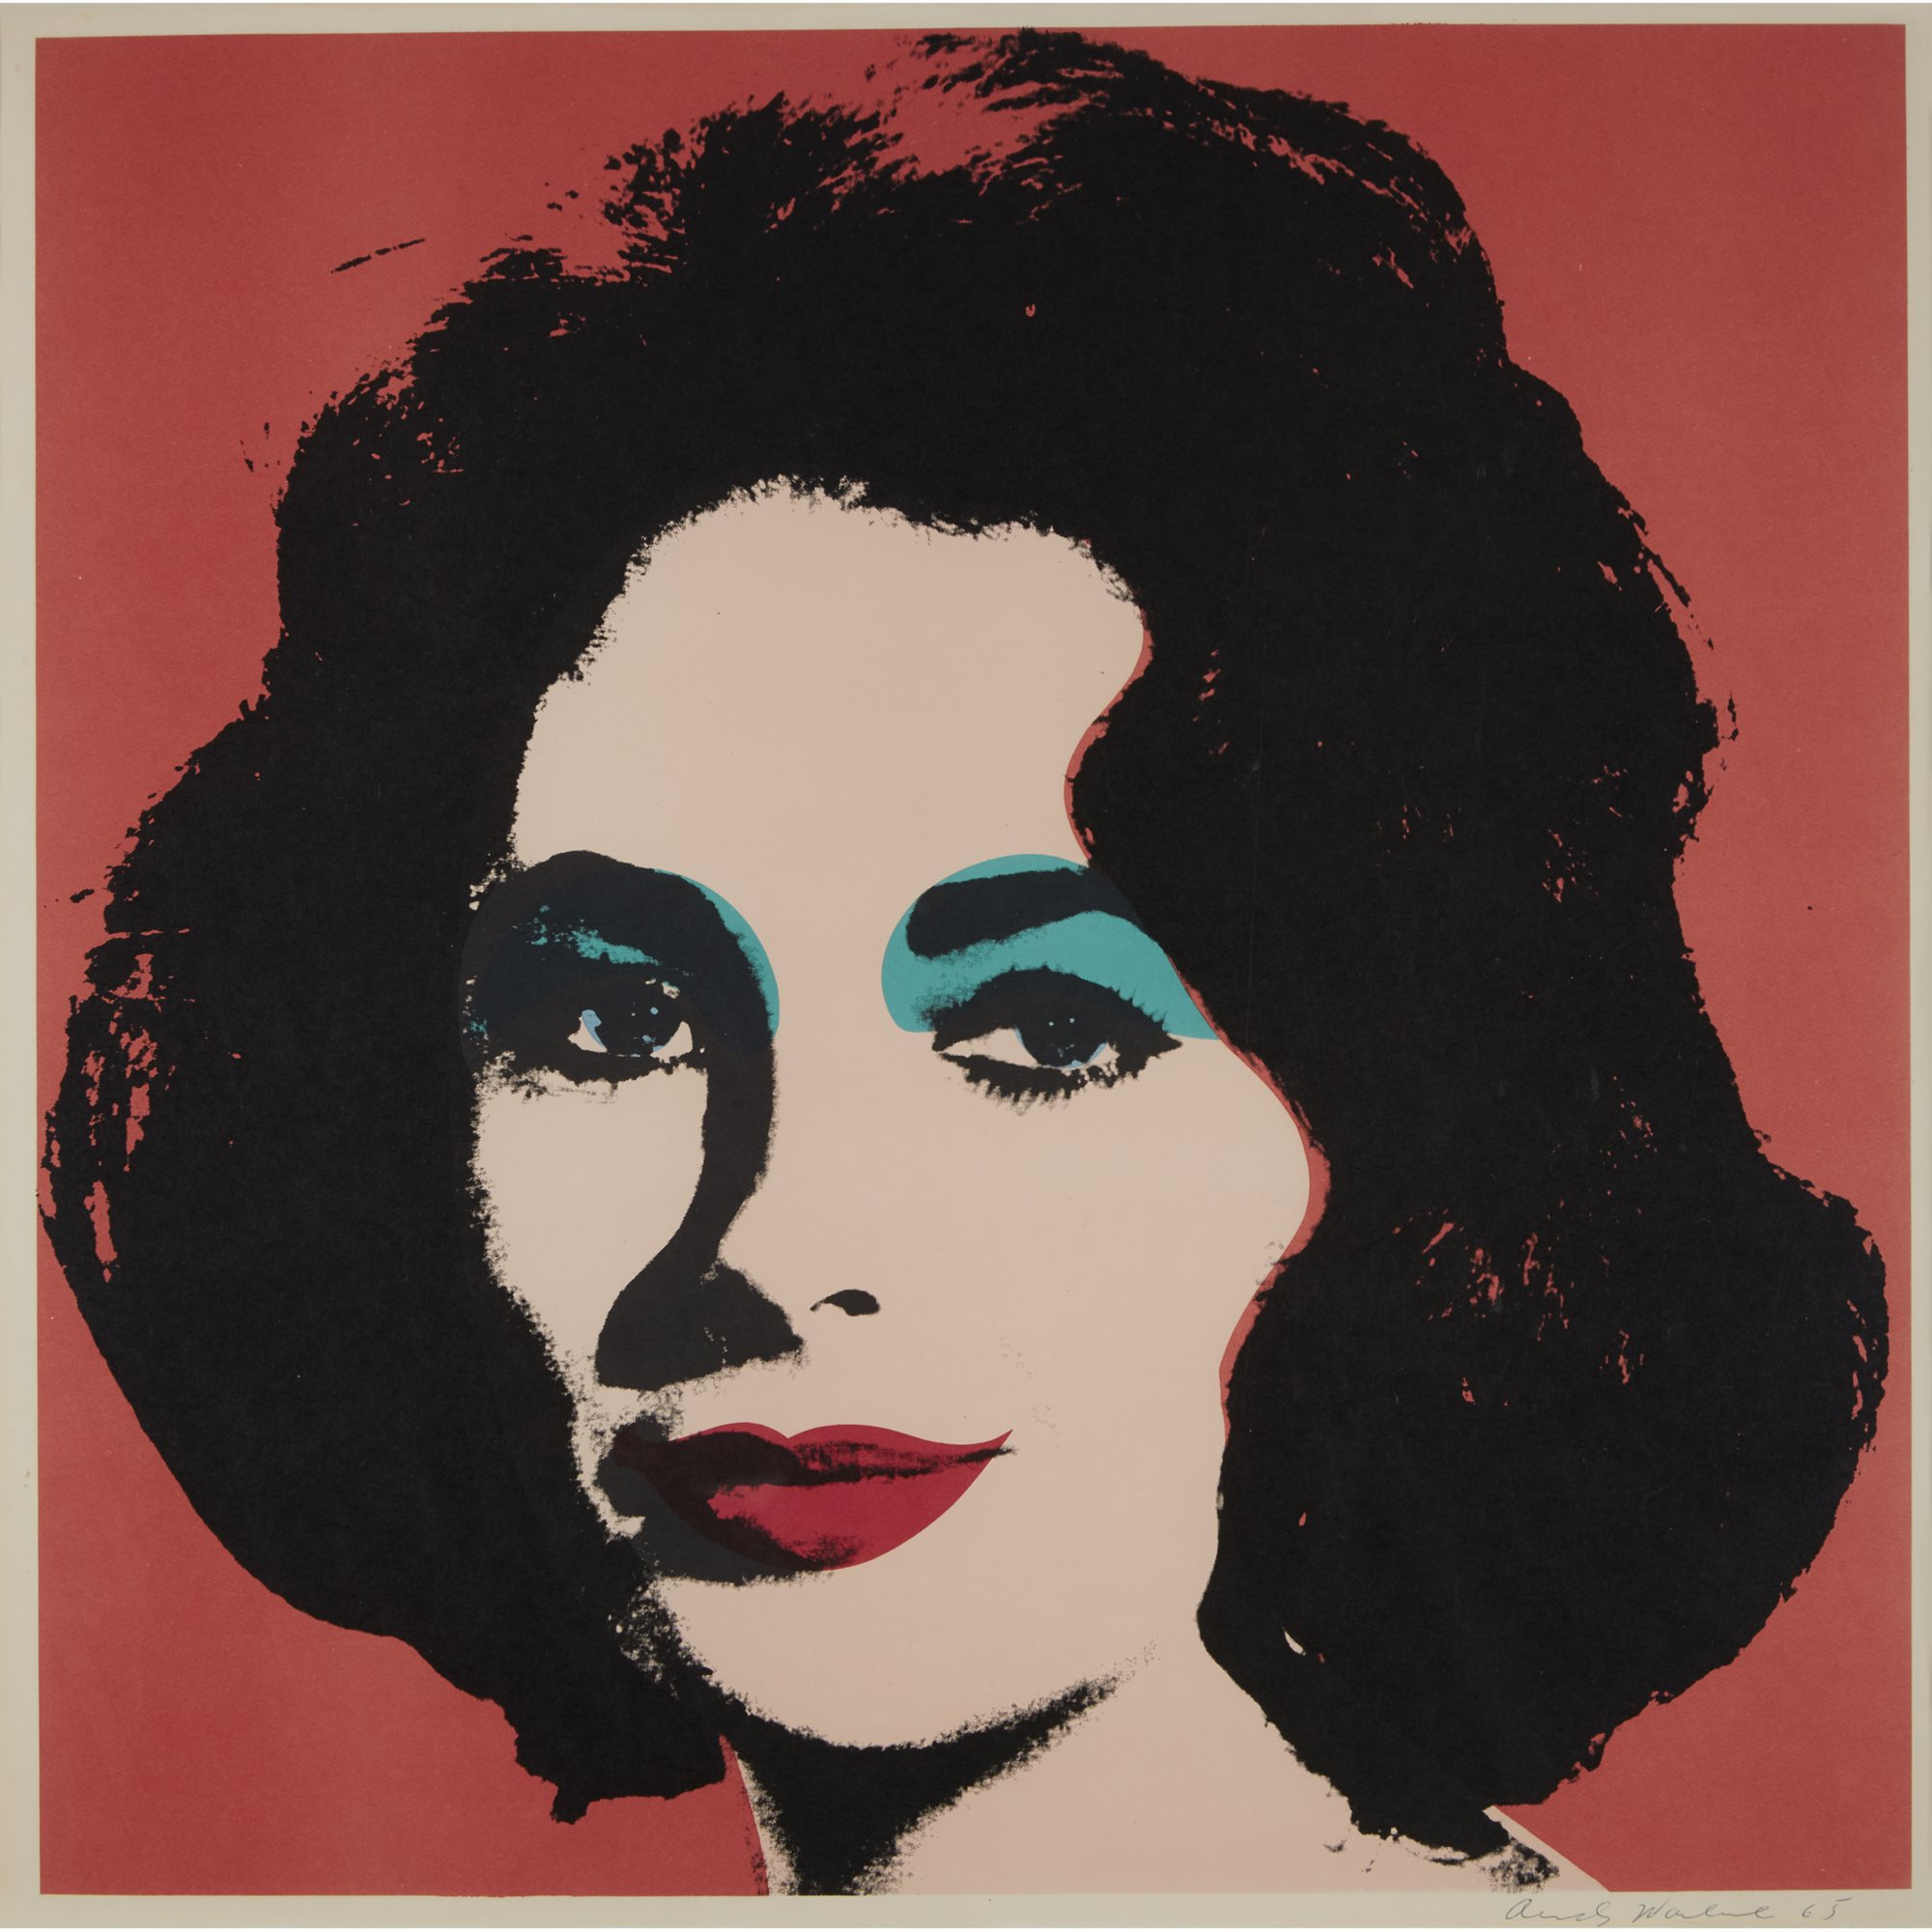 Andy Warhol (1928-1987)   Liz, 1964 color offset lithograph,  21 15/16 x 21 15/16 in. $20,000-30,000, ©2019 The Andy Warhol Foundation for the Visual Arts, Inc. | Licensed by Artists Rights Society (ARS), New York